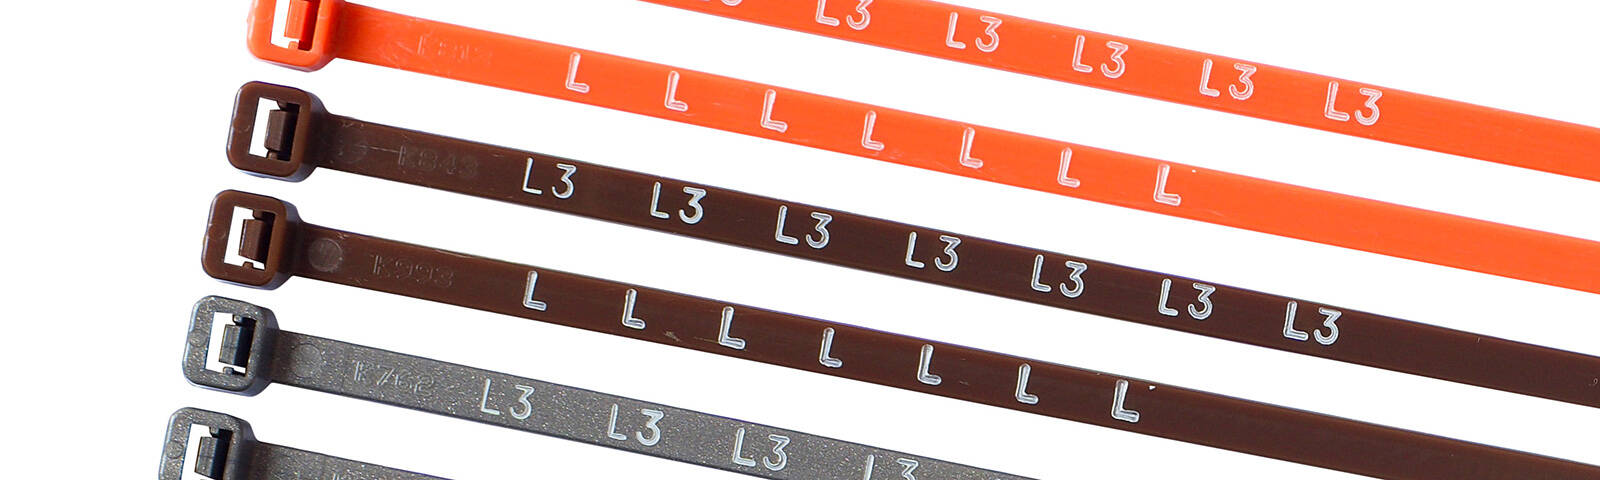 What are phase marking cable ties and why are they so important?